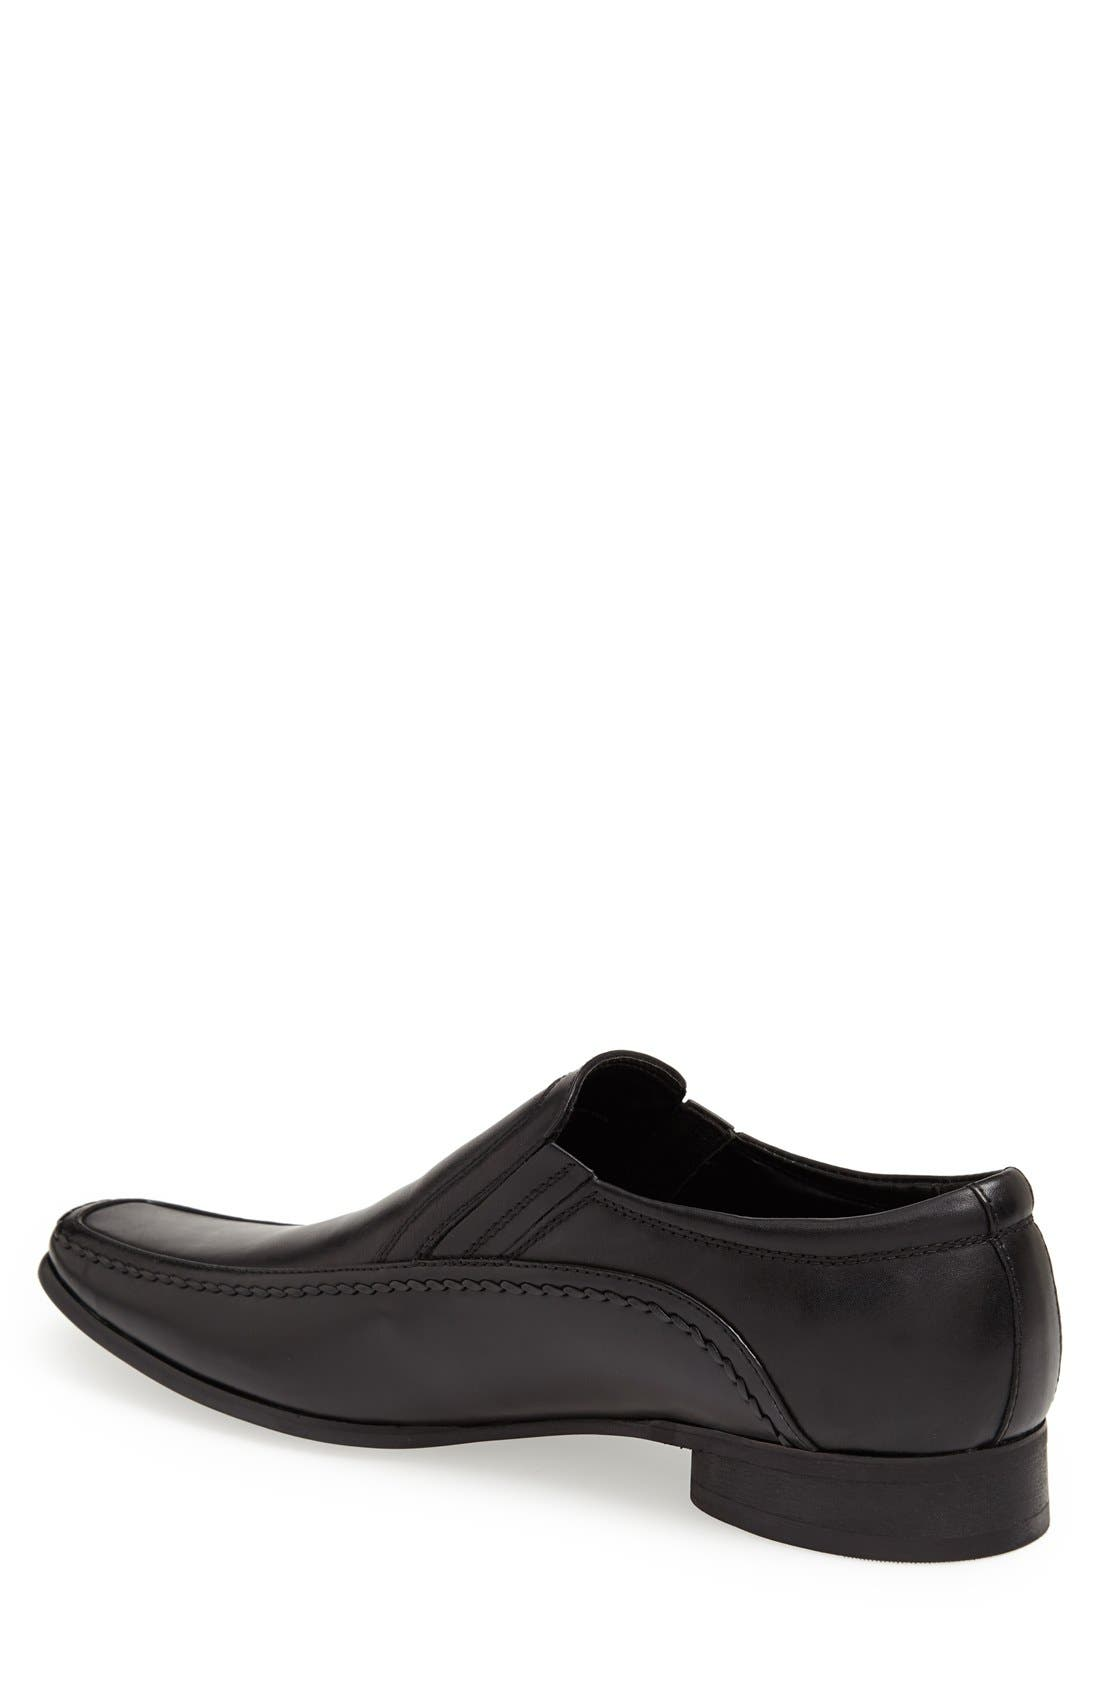 REACTION KENNETH COLE,                             'Key Note' Slip-On,                             Alternate thumbnail 6, color,                             001